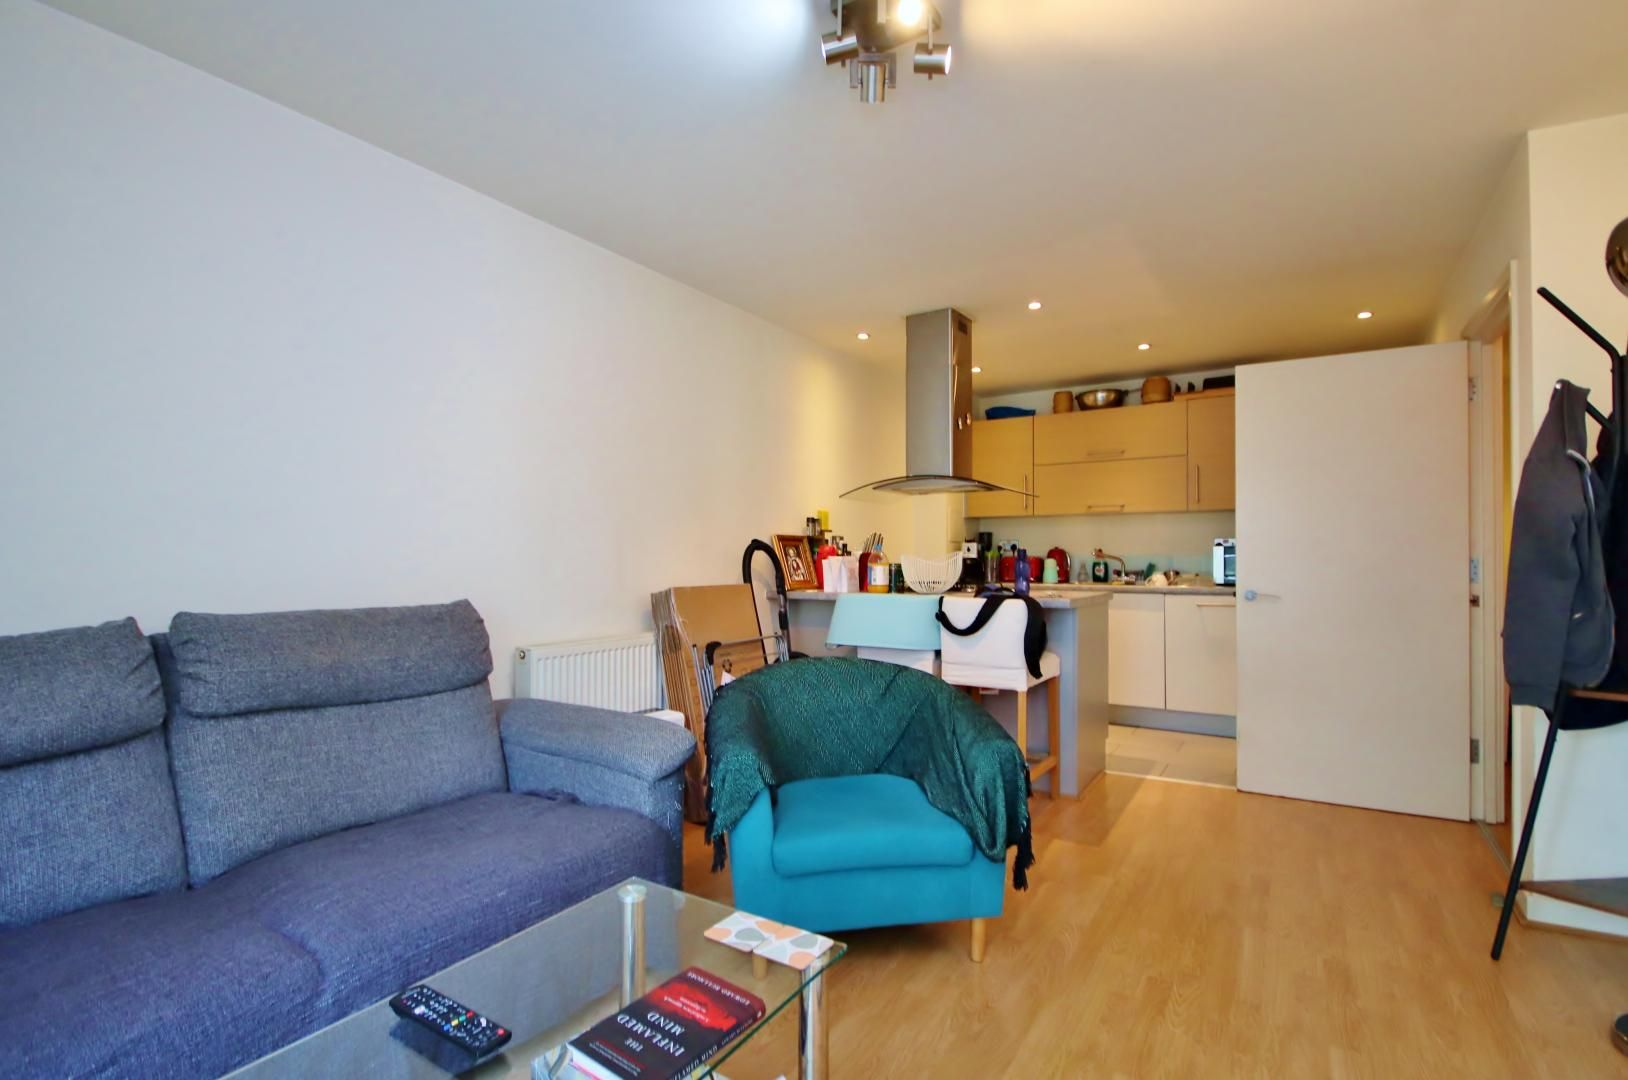 2 bed flat to rent in Tequila Wharf, E14